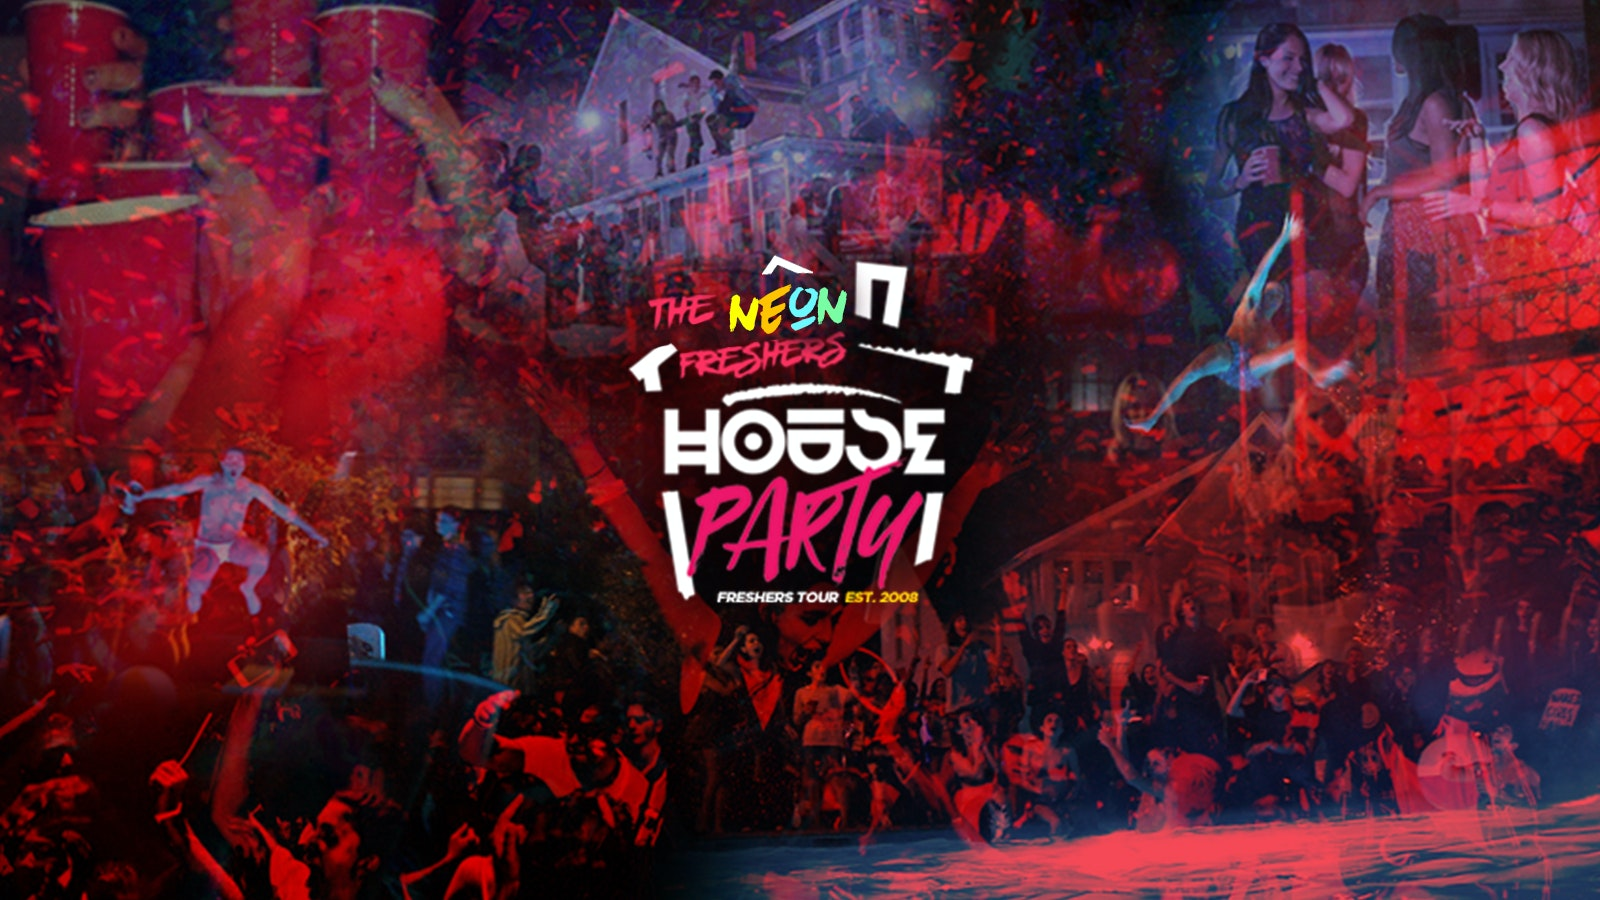 Neon Freshers House Party // Exeter Freshers 2020